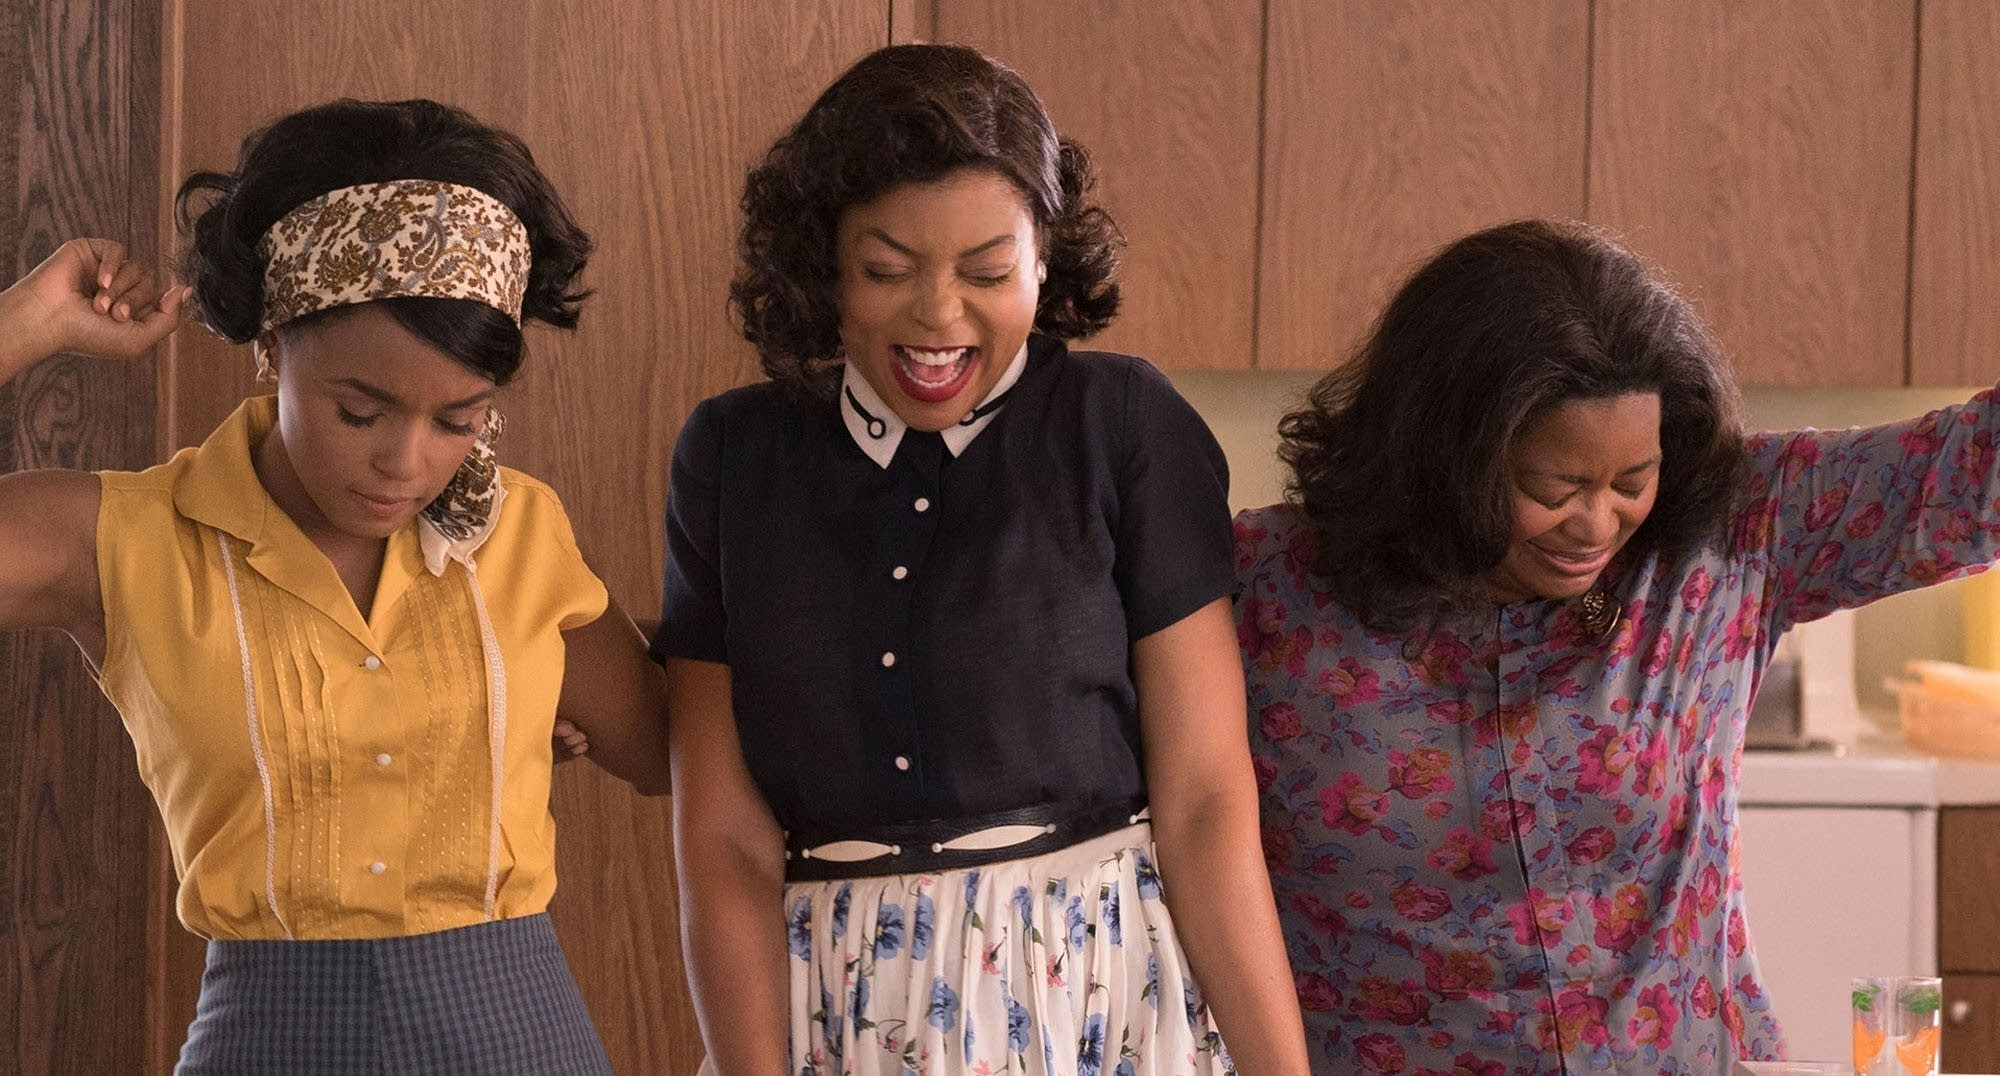 Janelle Monae, Taraji P. Henson, and Octavia Spencer in